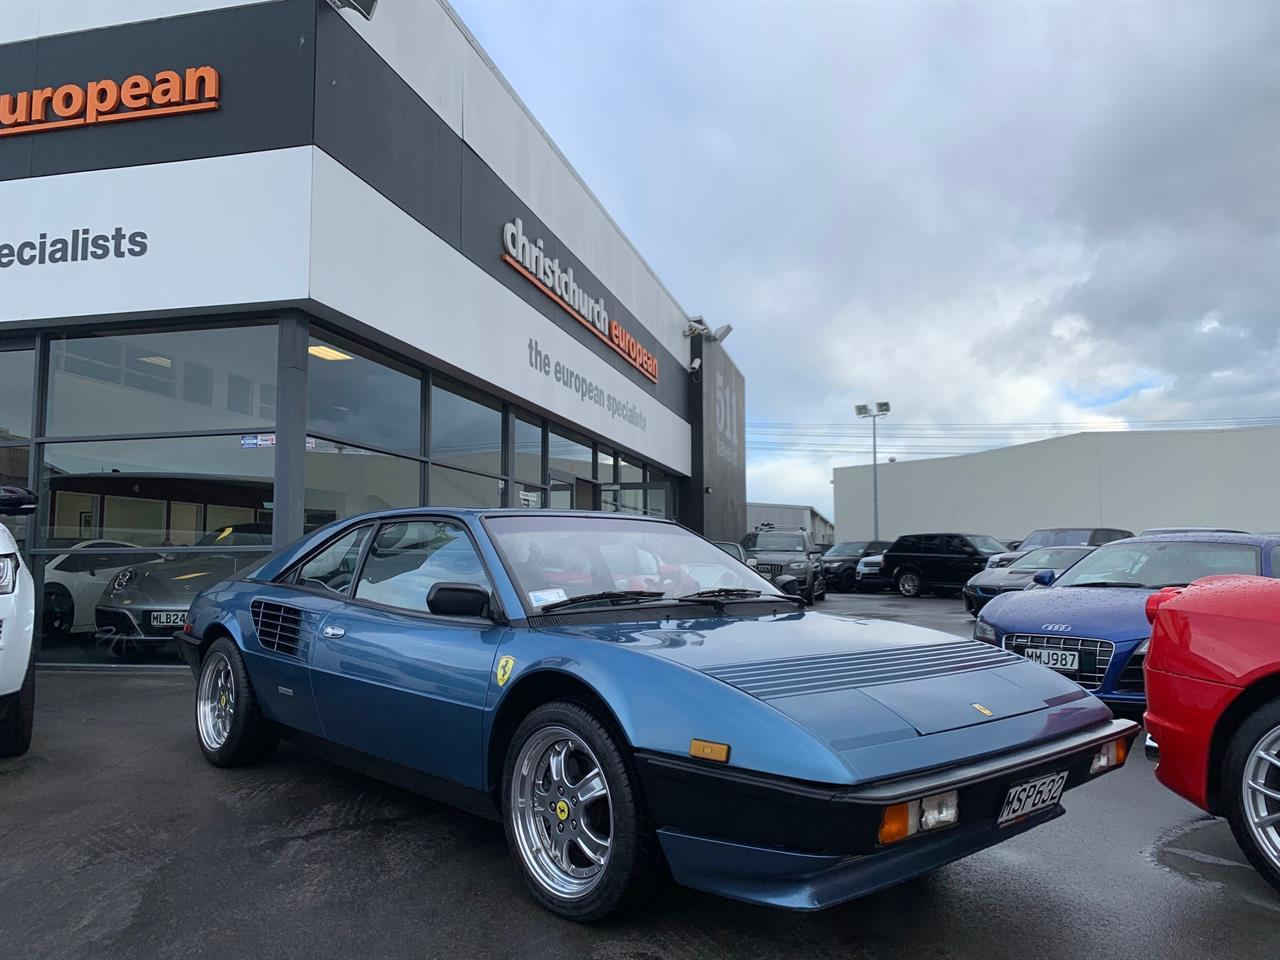 image-0, 1982 Ferrari Mondial 8 4 Seater Coupe at Christchurch